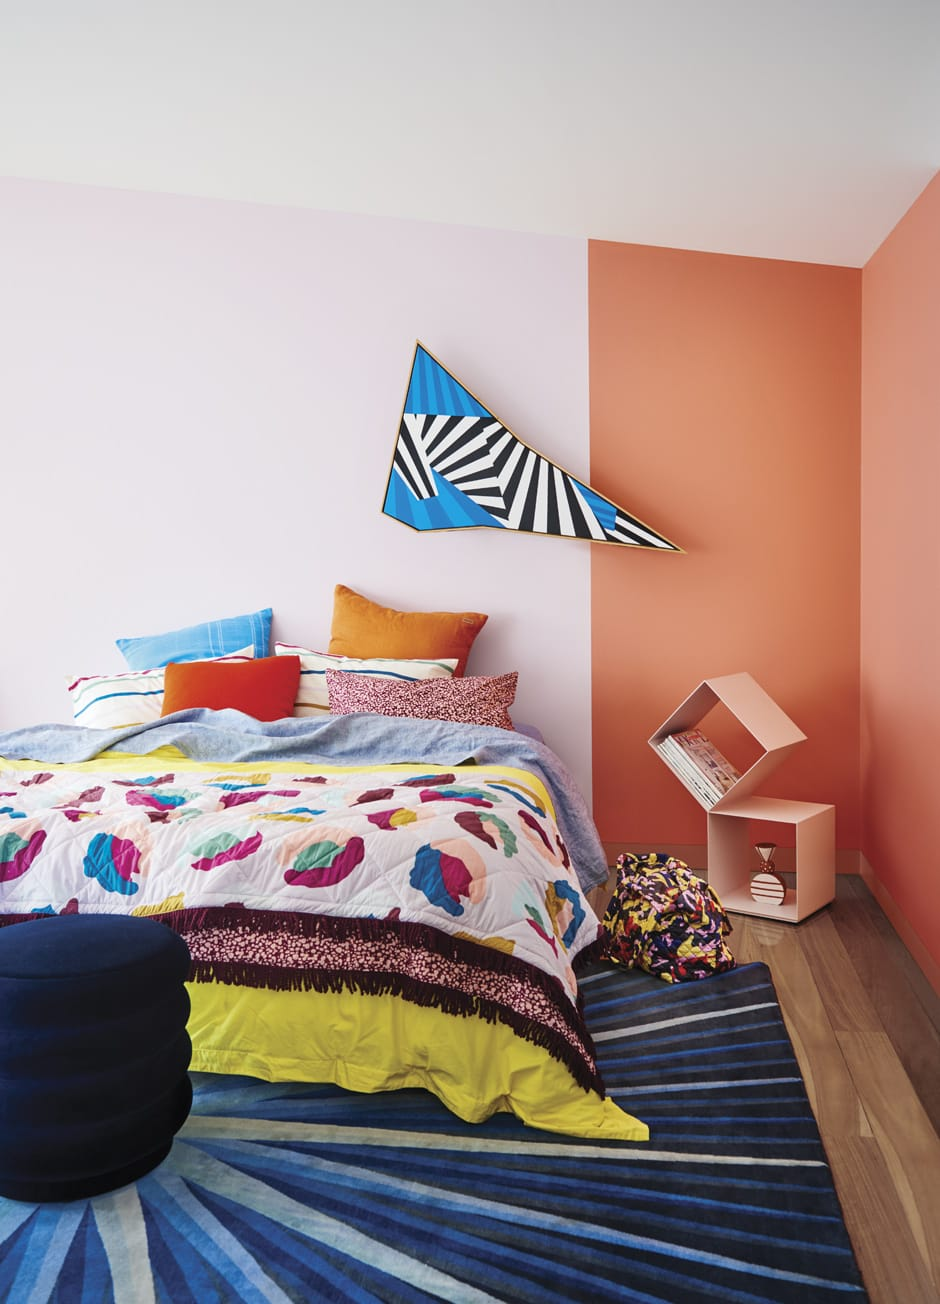 4-Color-Trends-2019-Dulux -Australia-Leech-Styling-Lisa-Cohen-Photography-Identity-Eclectic-Trends-3